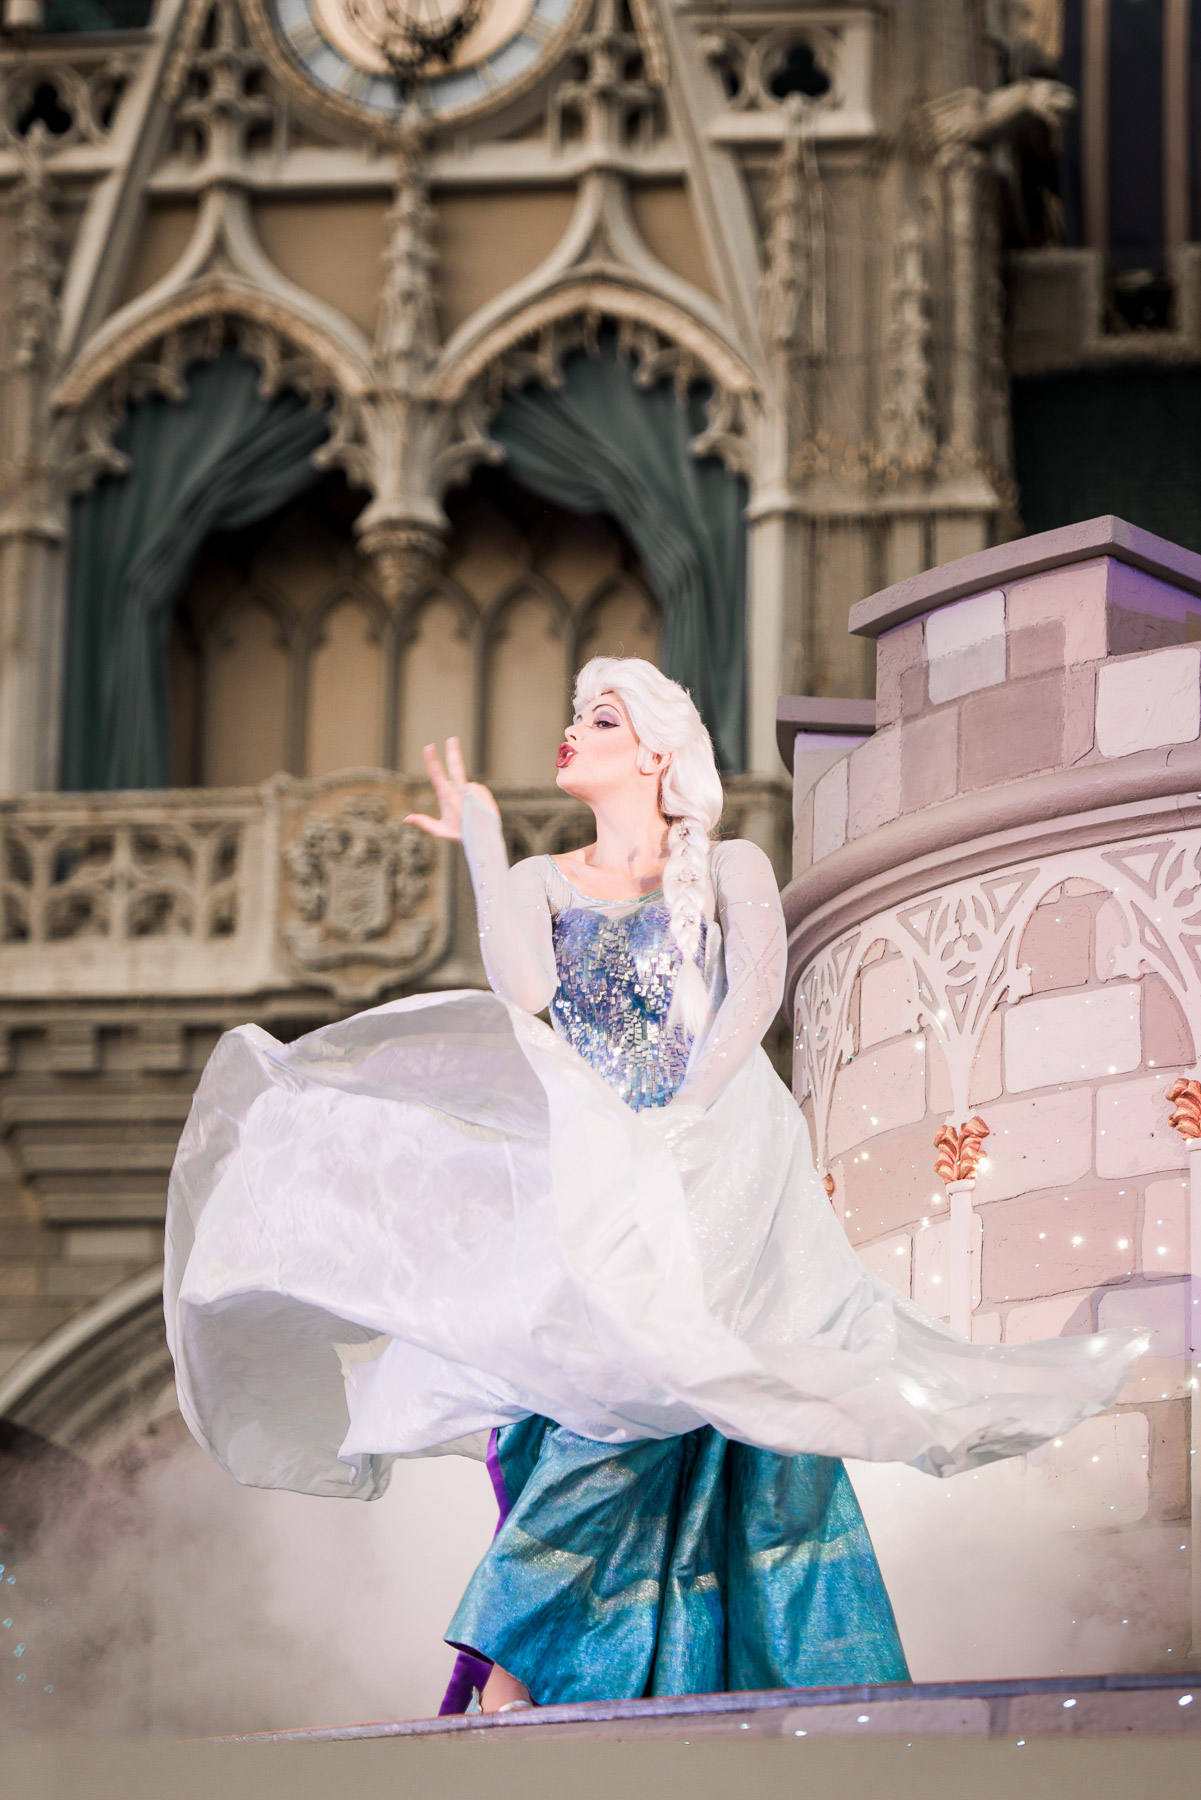 KateTaramykinStudios-Disney-World-Photographer-Dec-2016-10.jpg